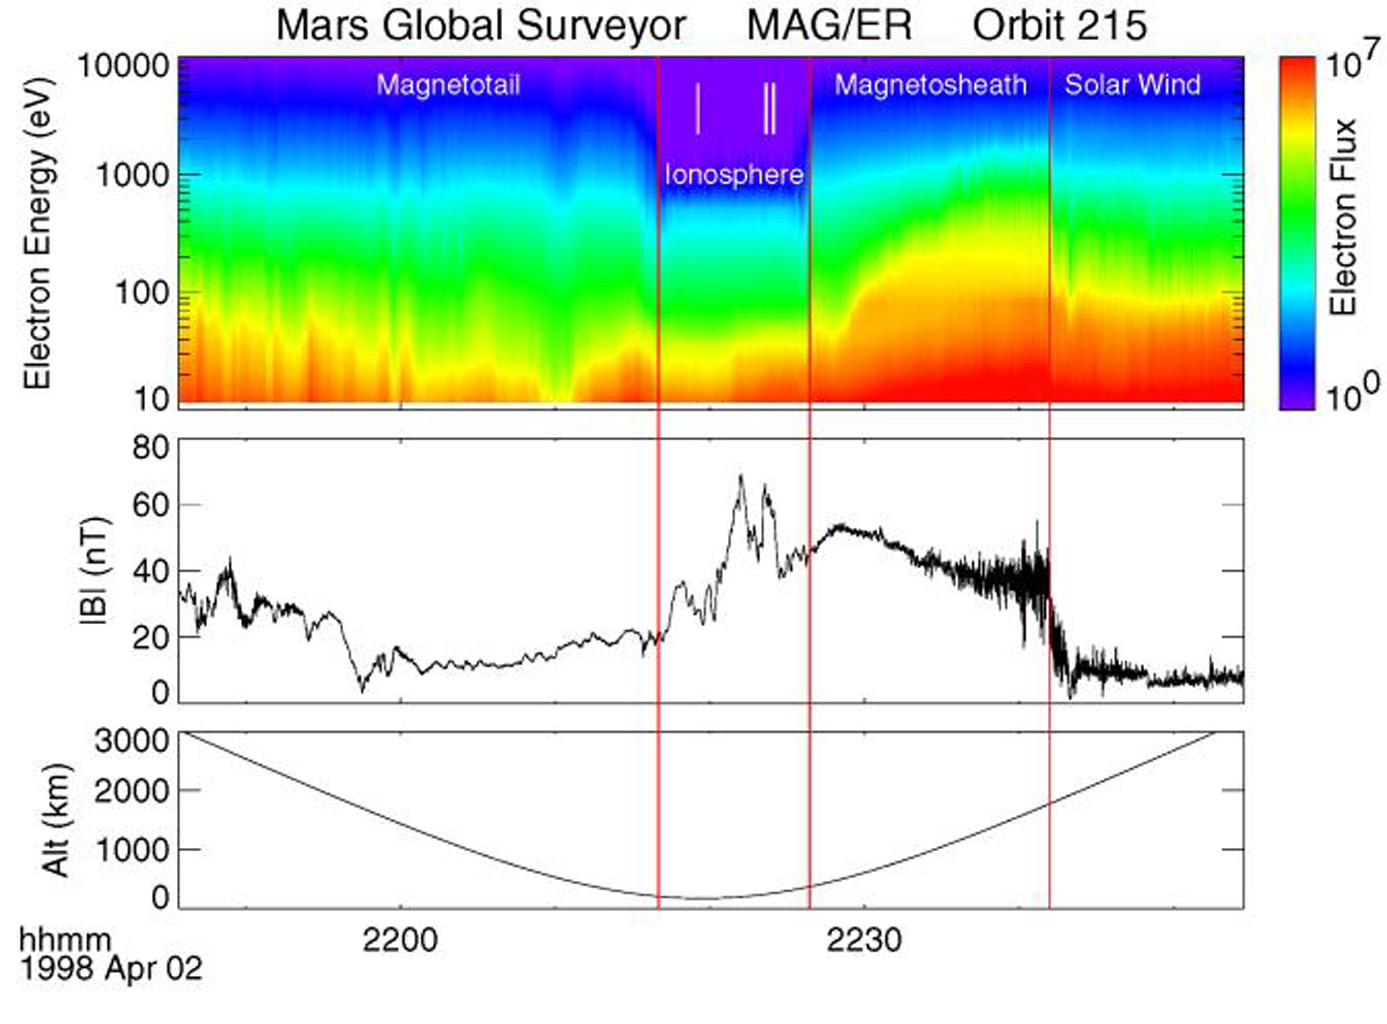 NASA's Mars Global Surveyor shows electron energy and flux and magnetic field measurements from orbit #215, which passed from the solar wind regime through the various magnetic regimes of Mars.